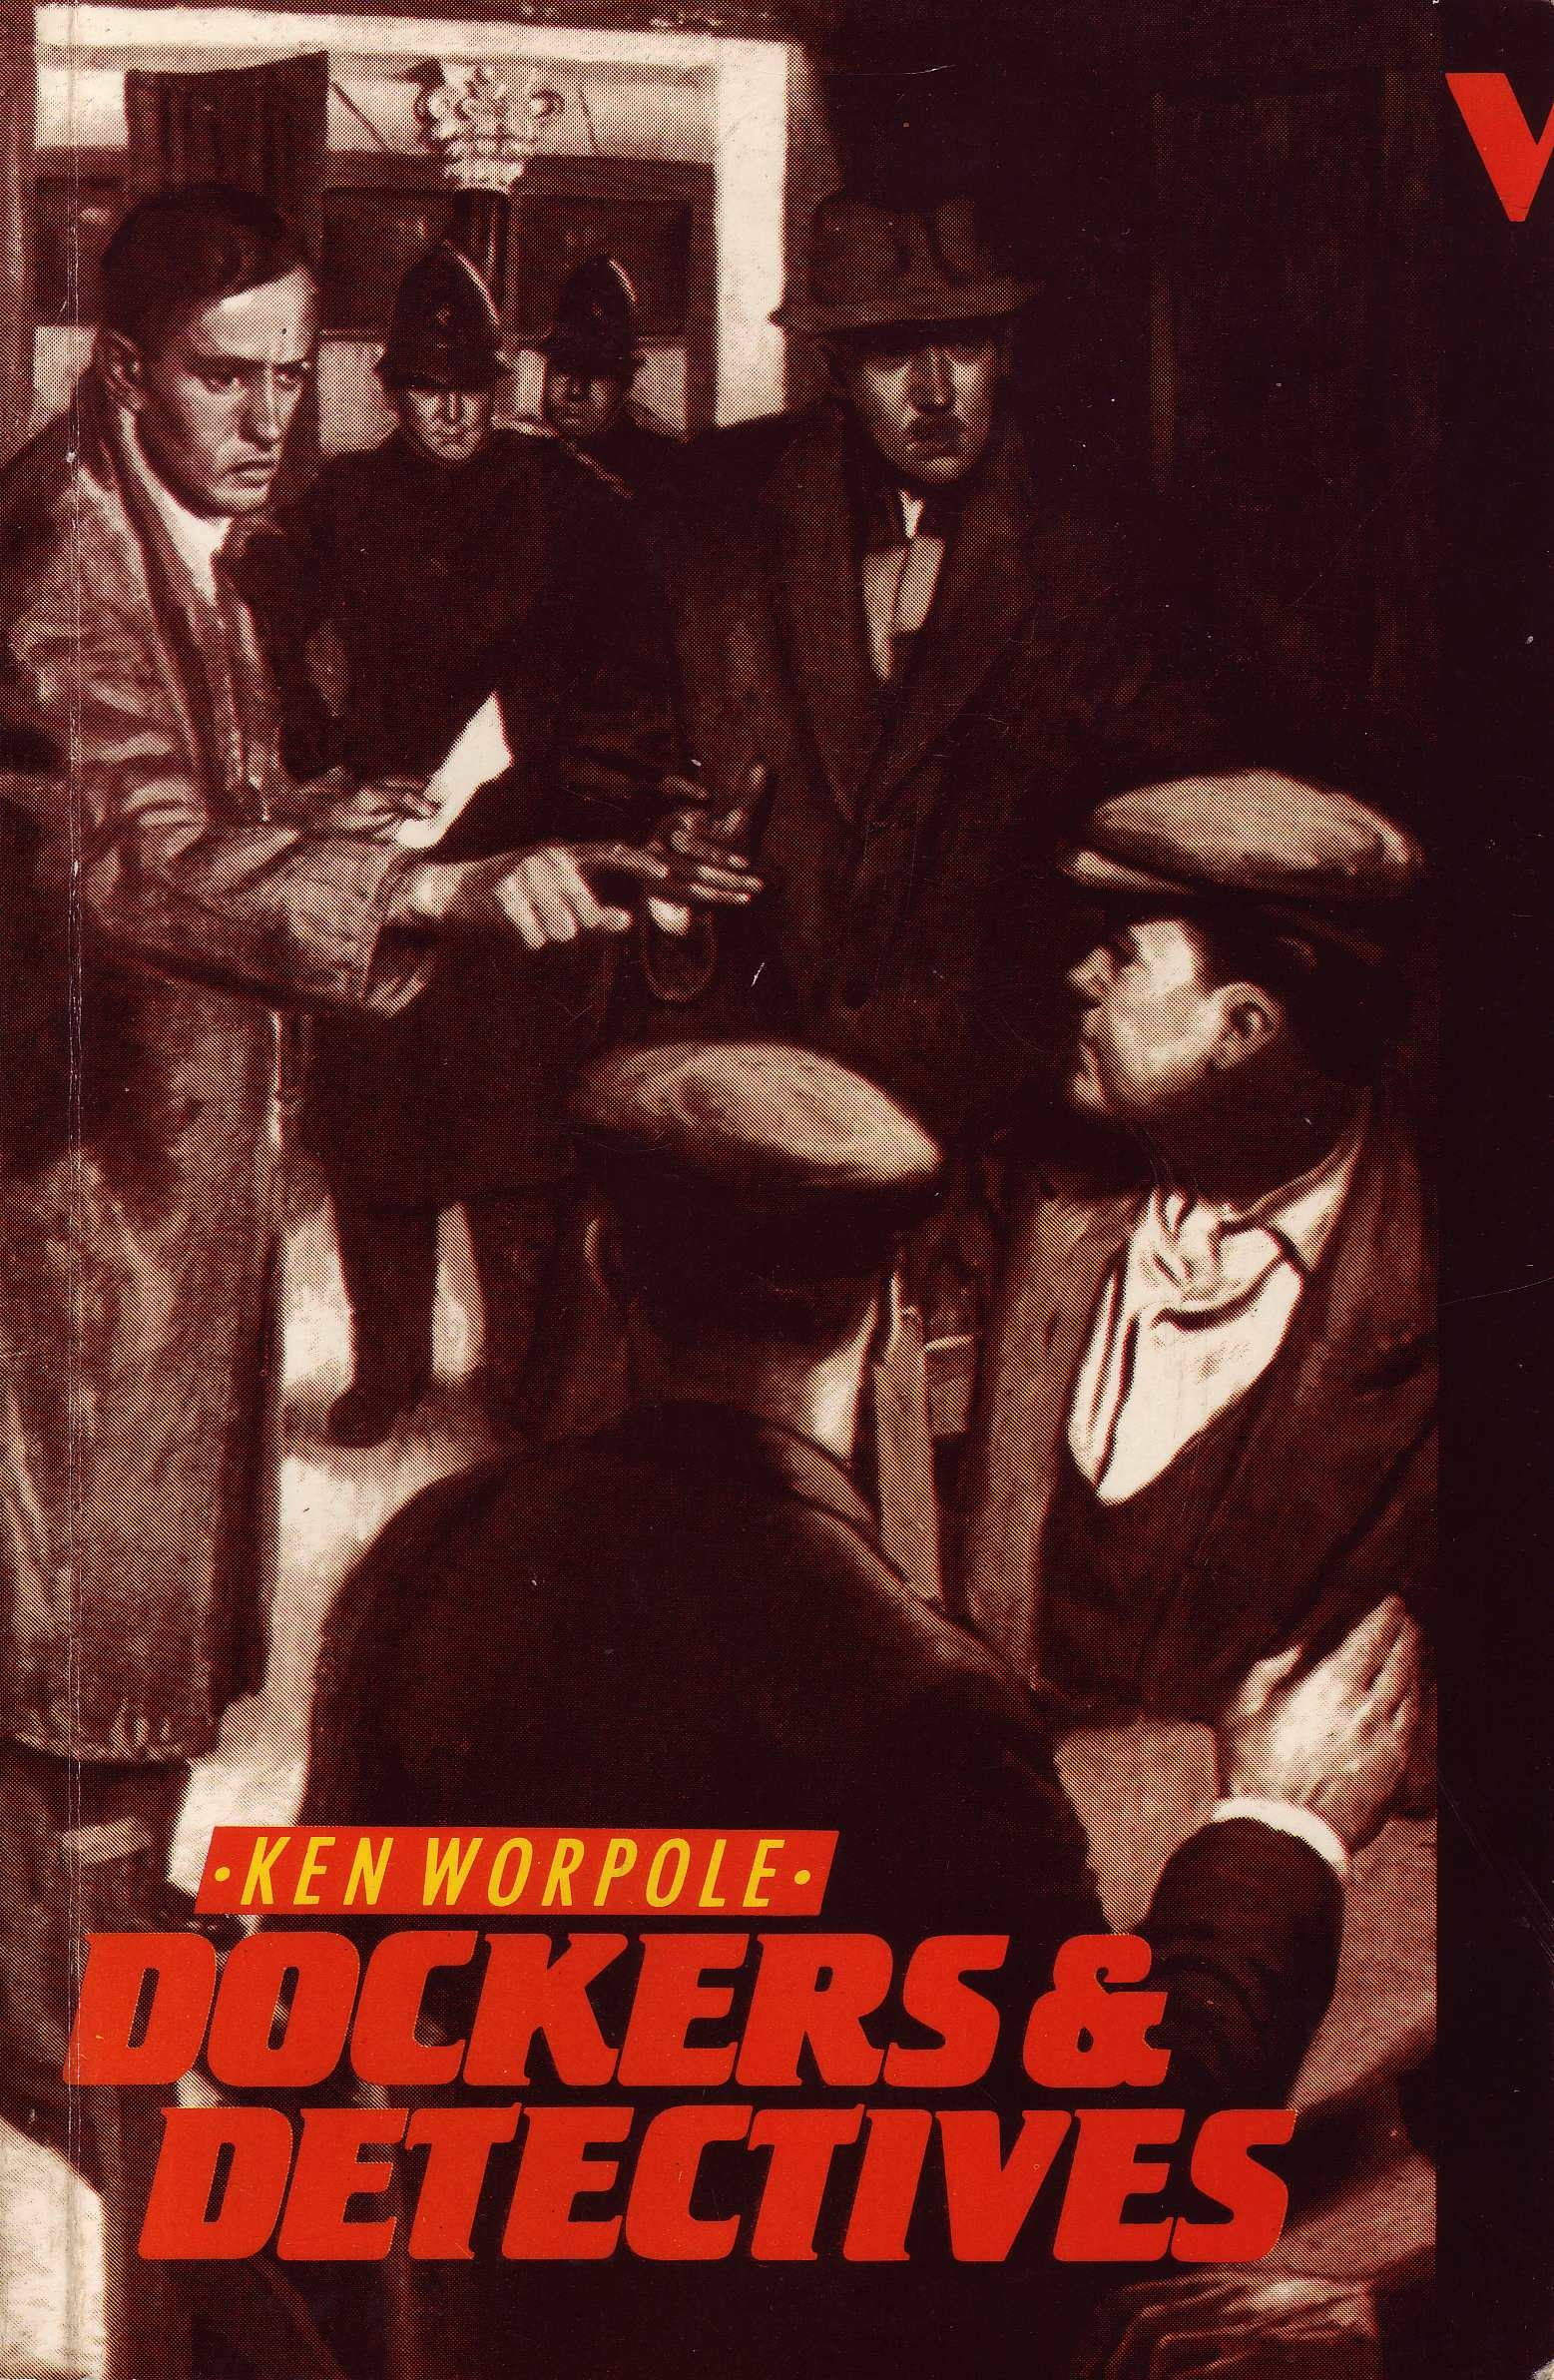 Dockers and Detectives by Ken Worpole